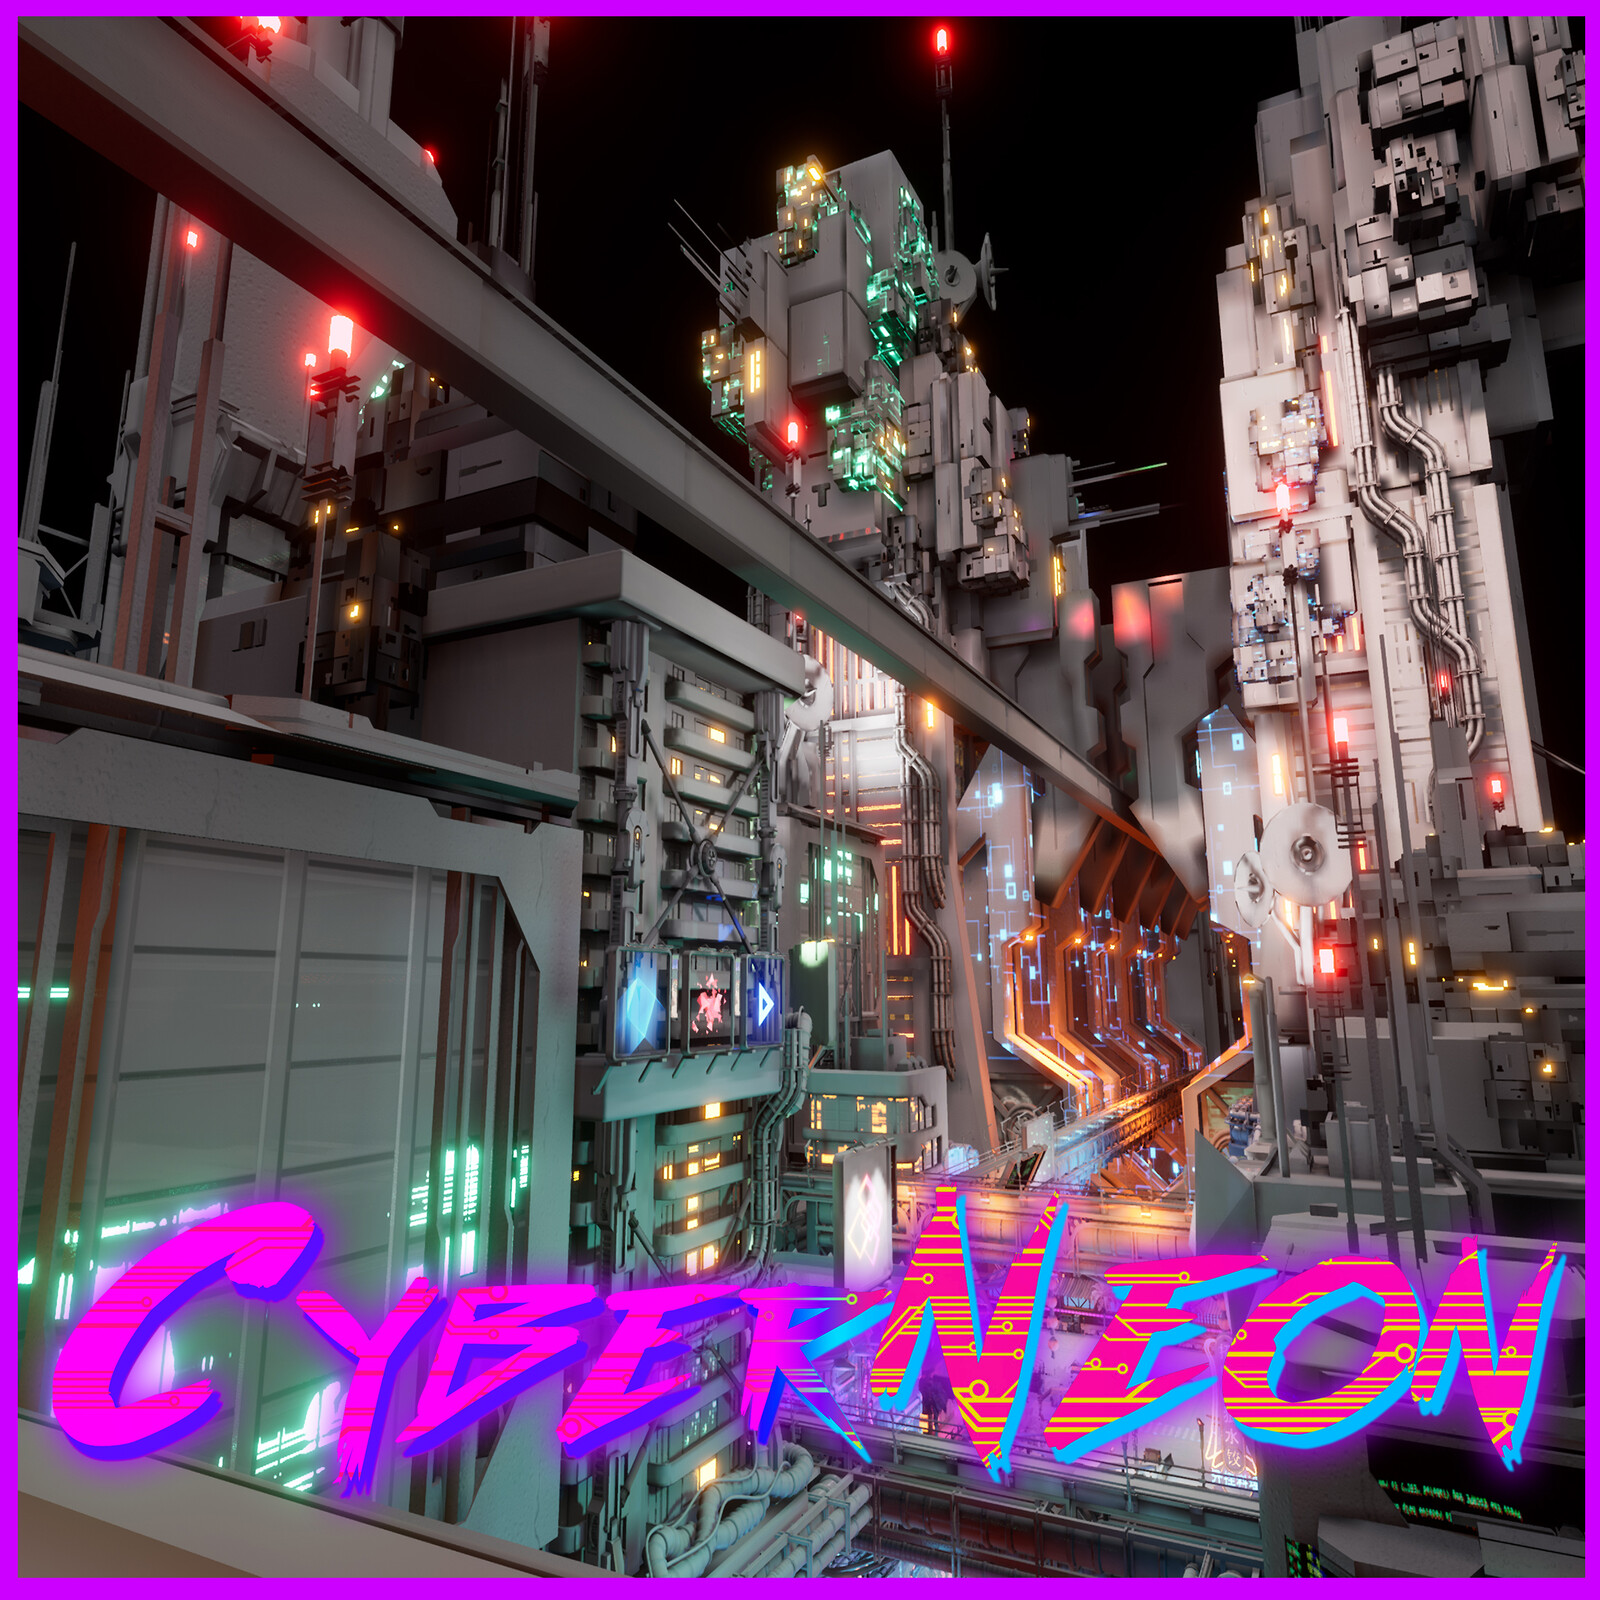 赛博朋克:霓虹中国 (CyberNeon) Environment Assets And City Layout